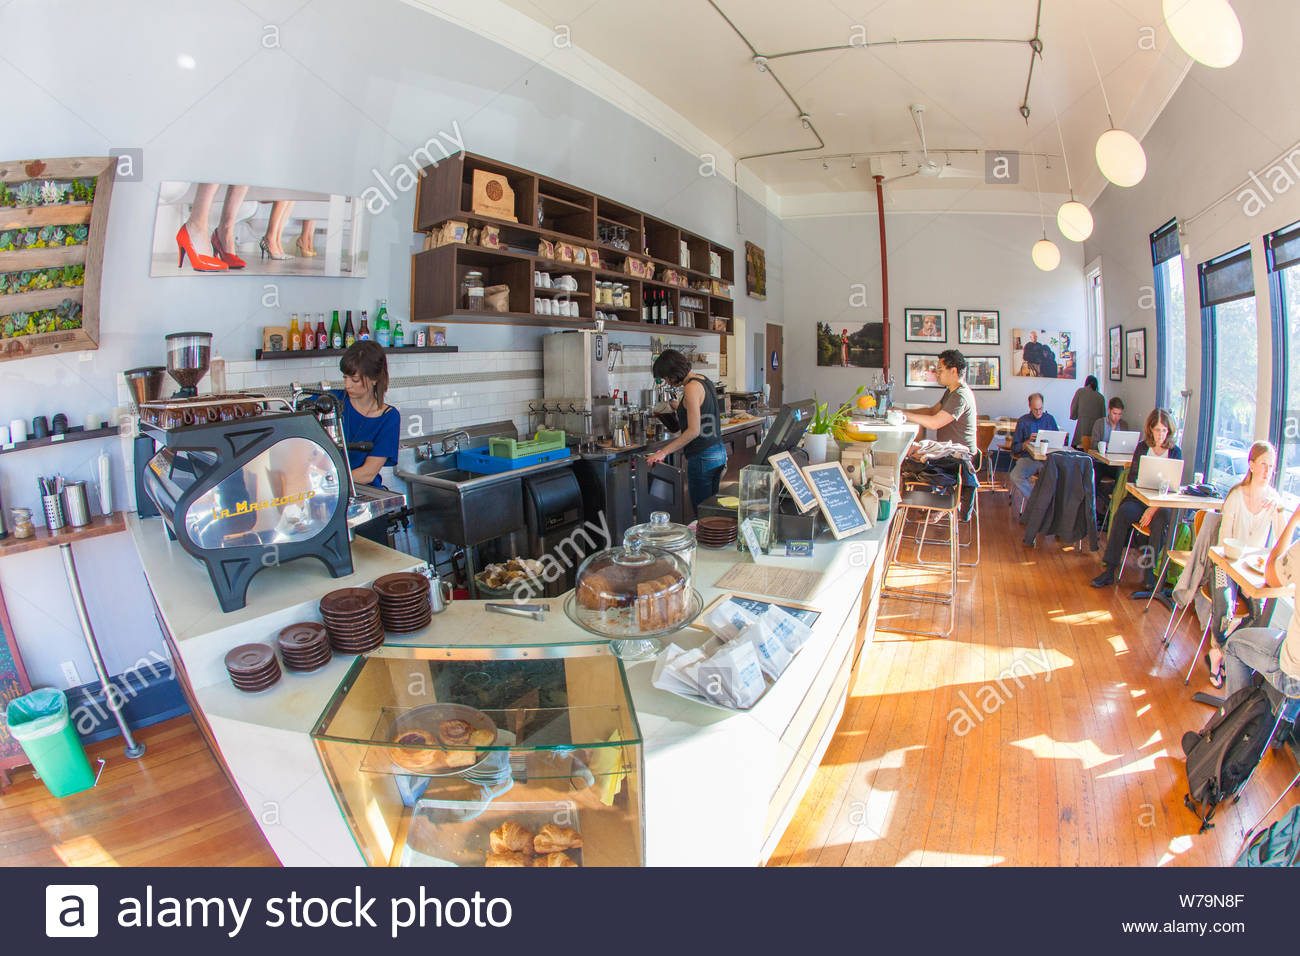 San Francisco, United States - February 27 2013: Coffee and certainly slow drip is cool and hip again. A hipster coffee bar. Stock Photo